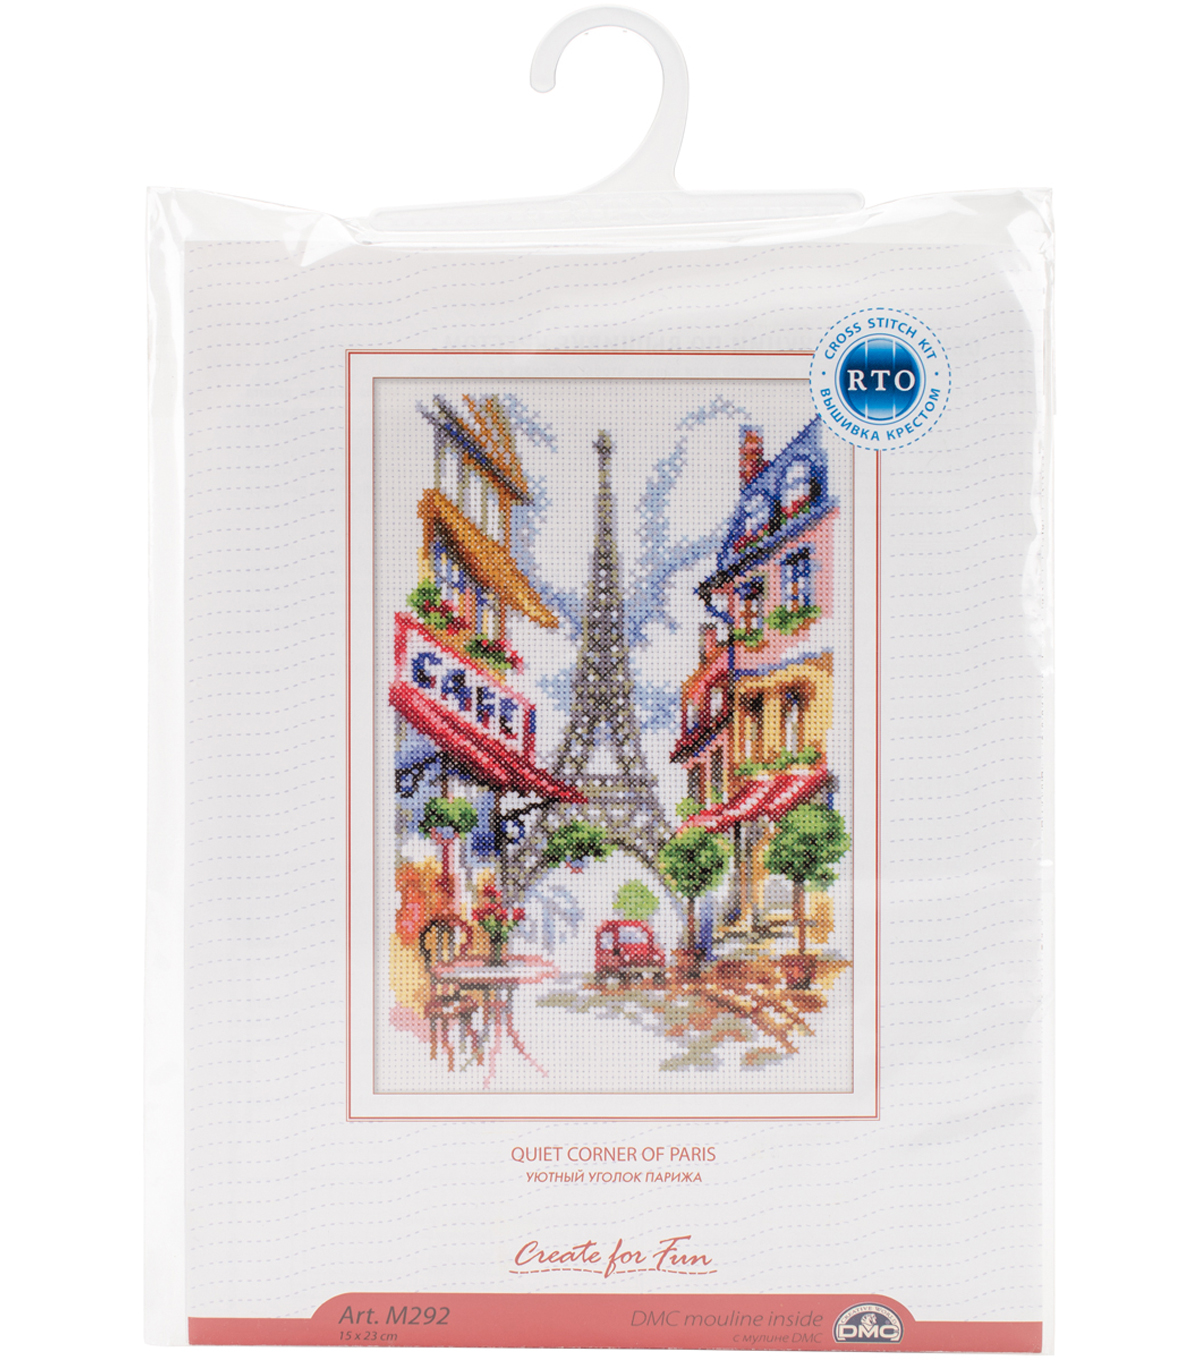 Quiet Corner Of Paris Counted Cross Stitch Kit 14 Count